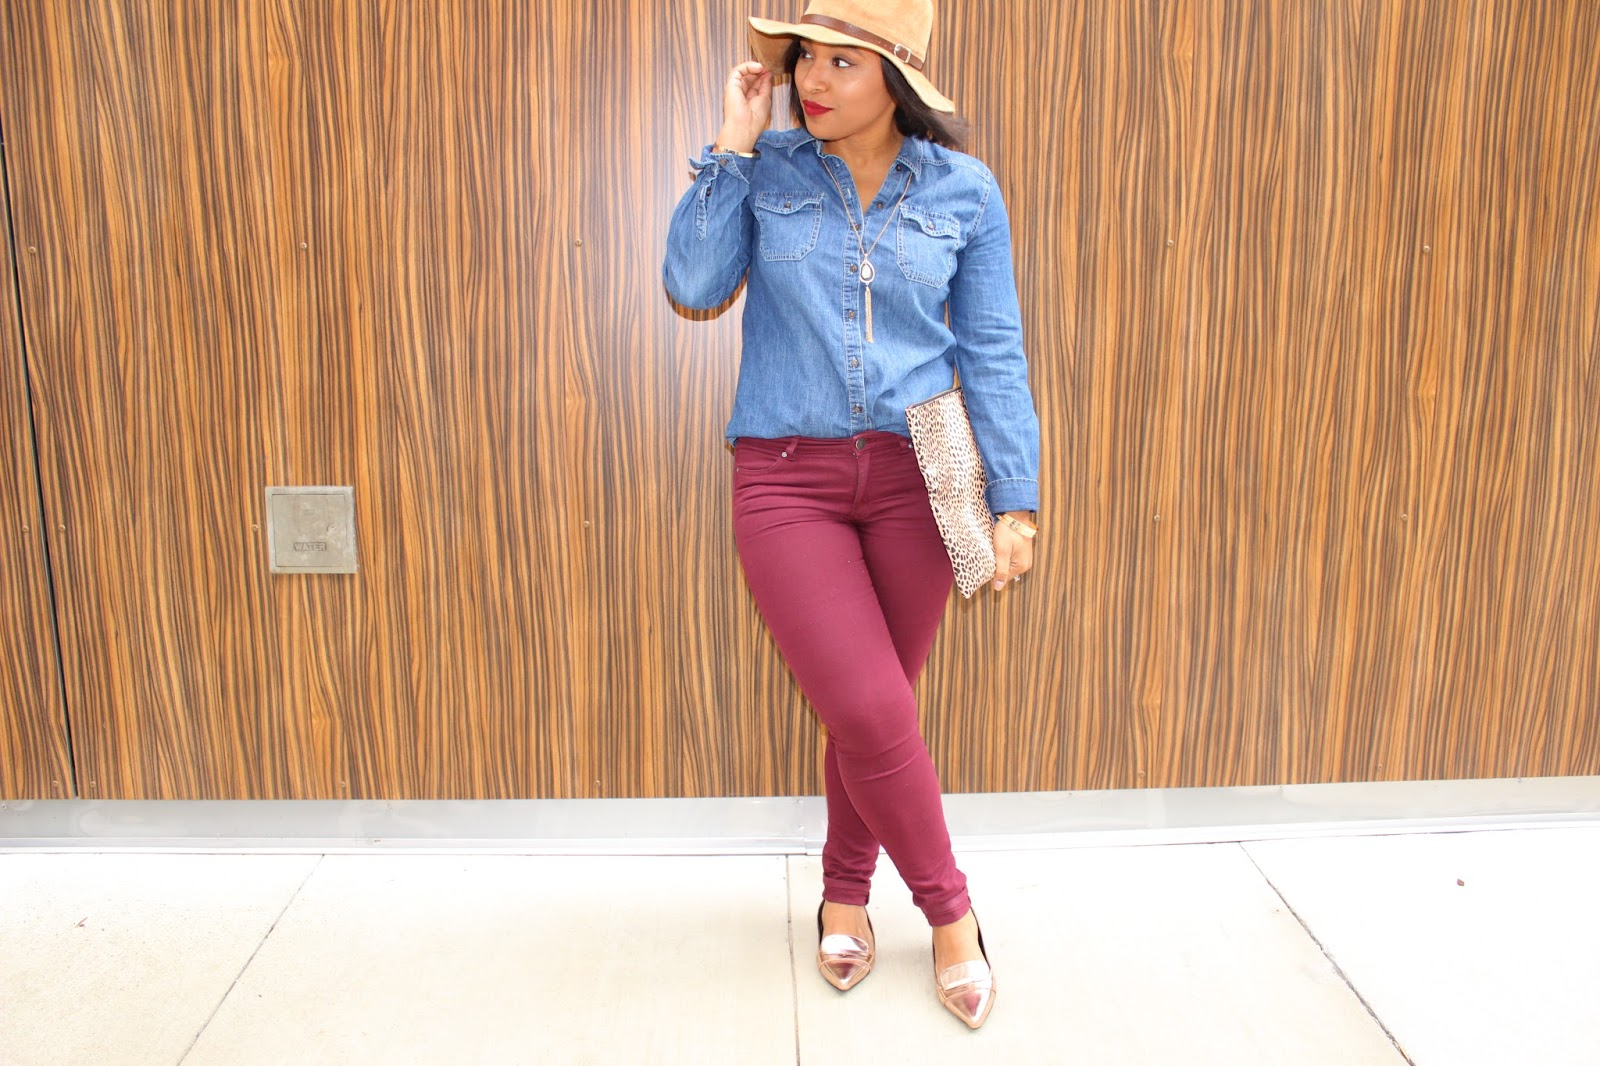 Mandee, hats, fall outfits, denim, forever21, flats, winter hat, fashion blogger, burgundy